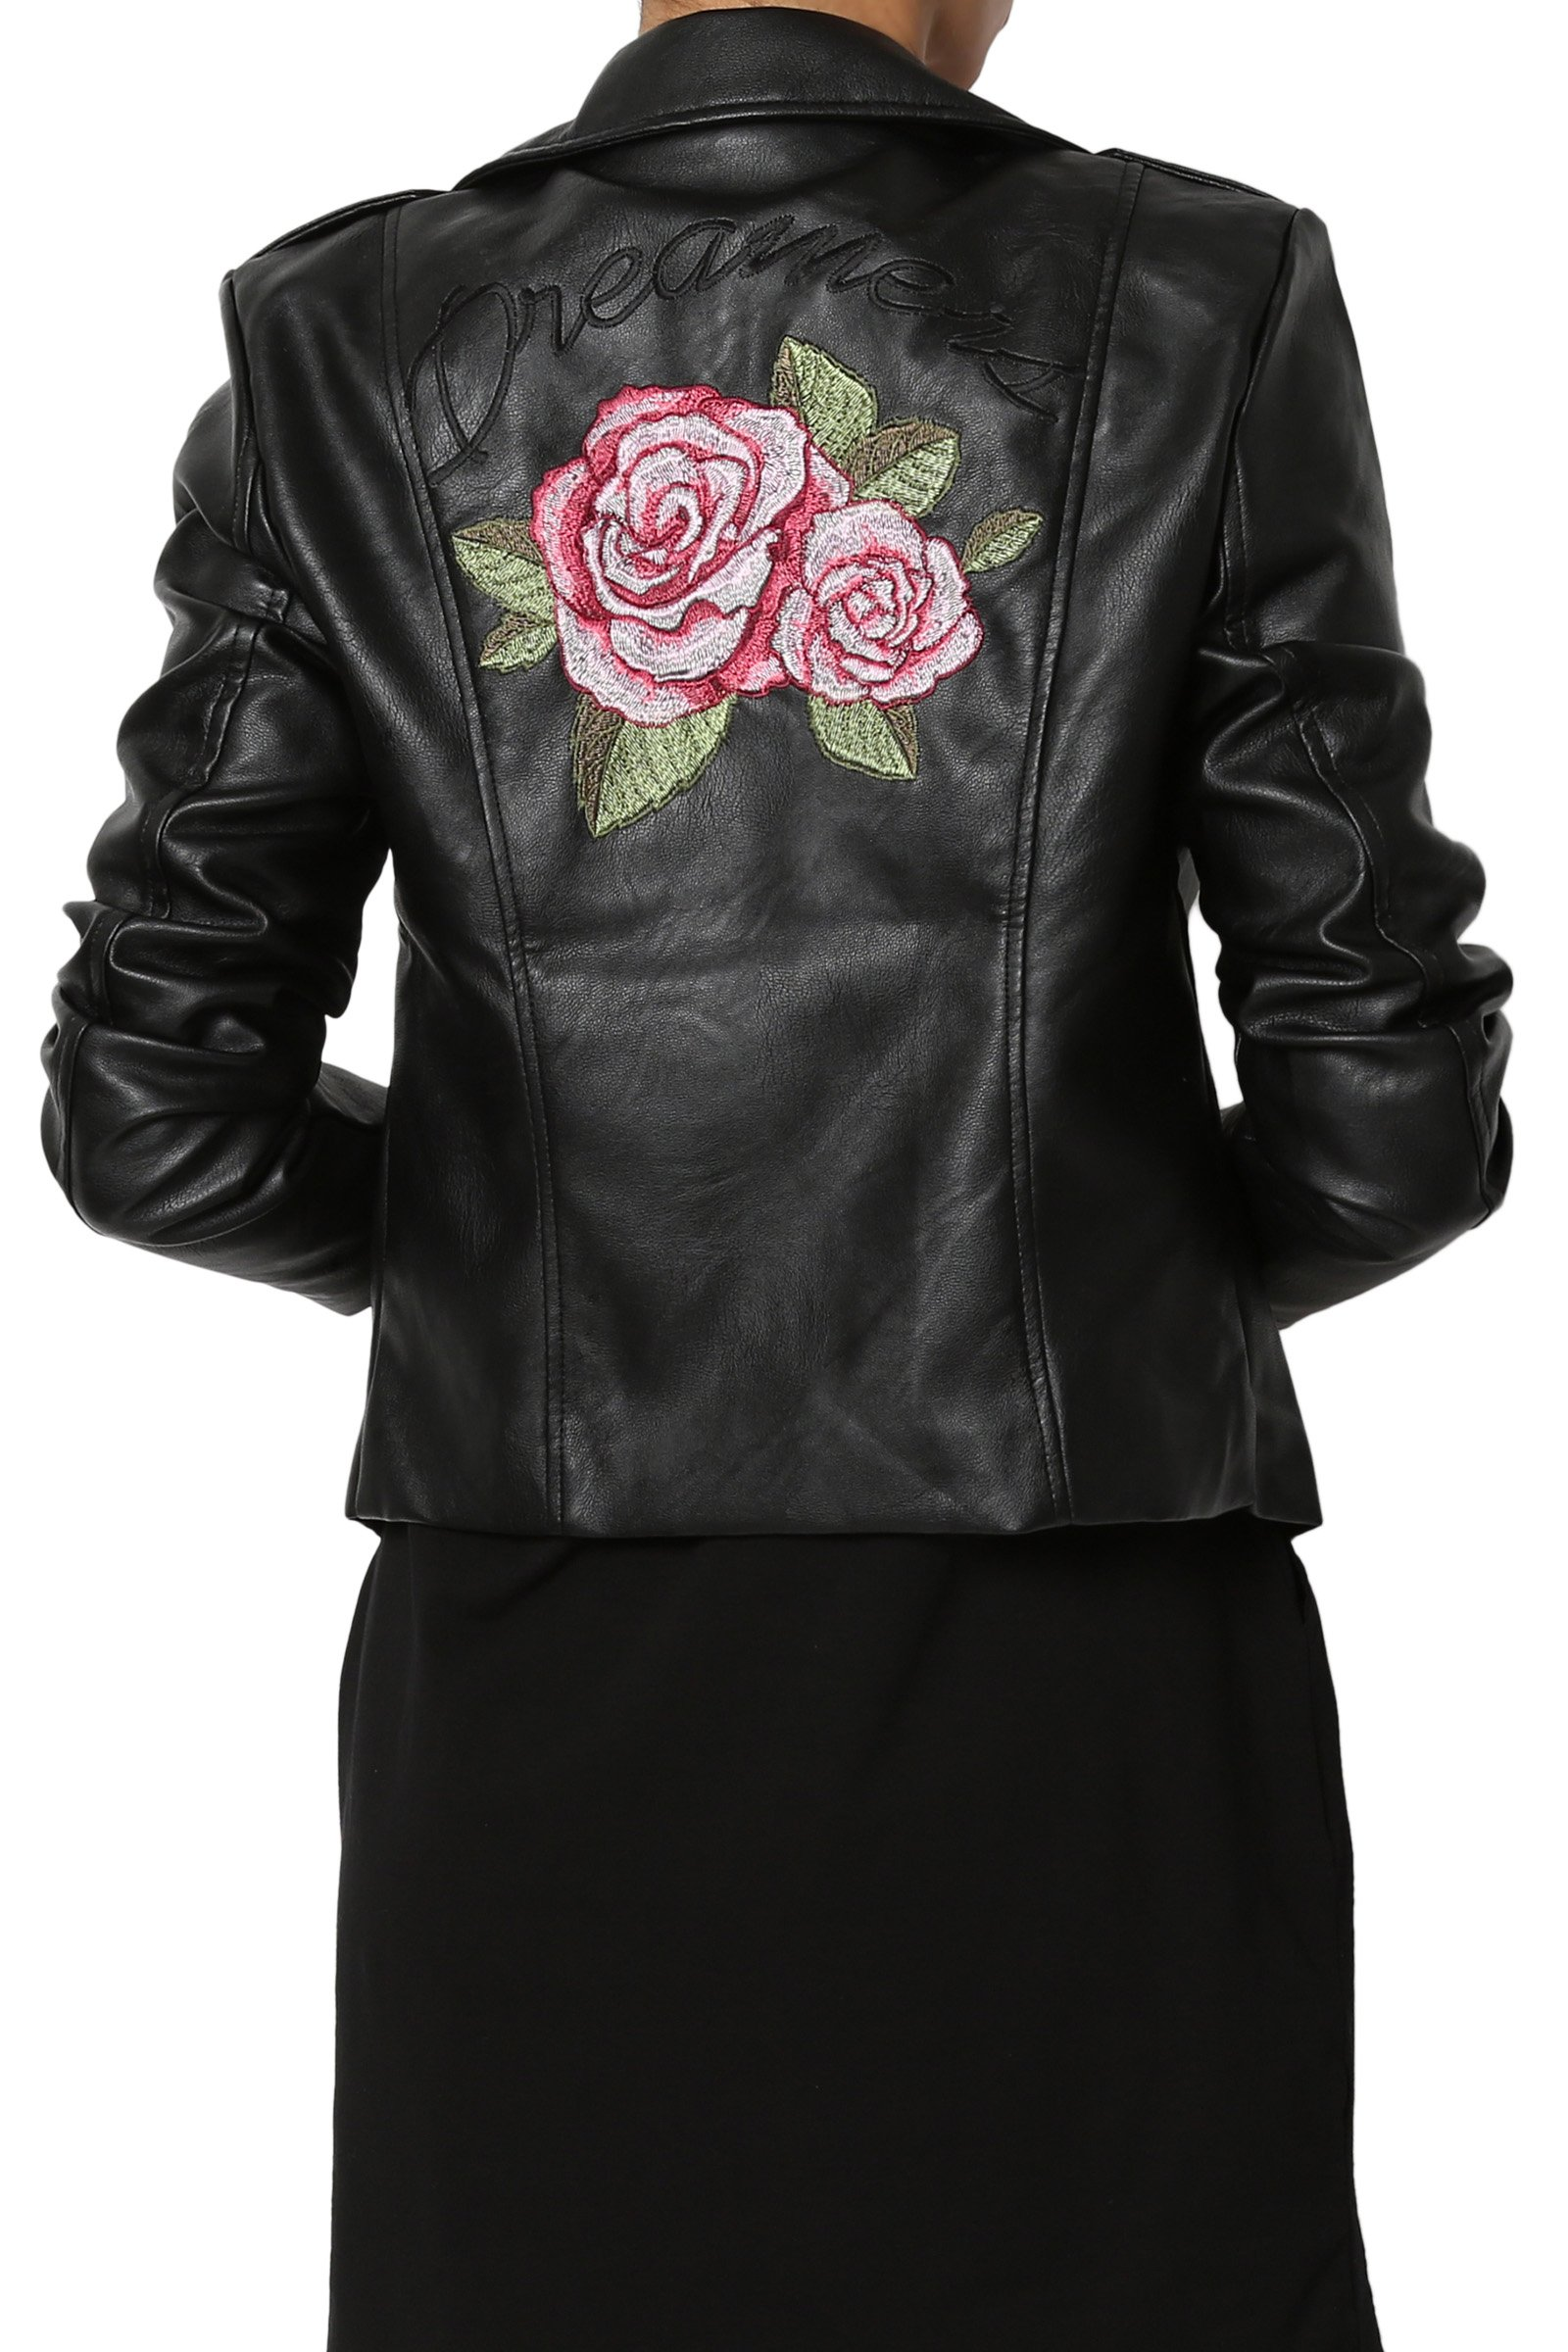 TheMogan Junior's Flower Rose Embroidered Faux Leather Moto Jacket Black 1XL